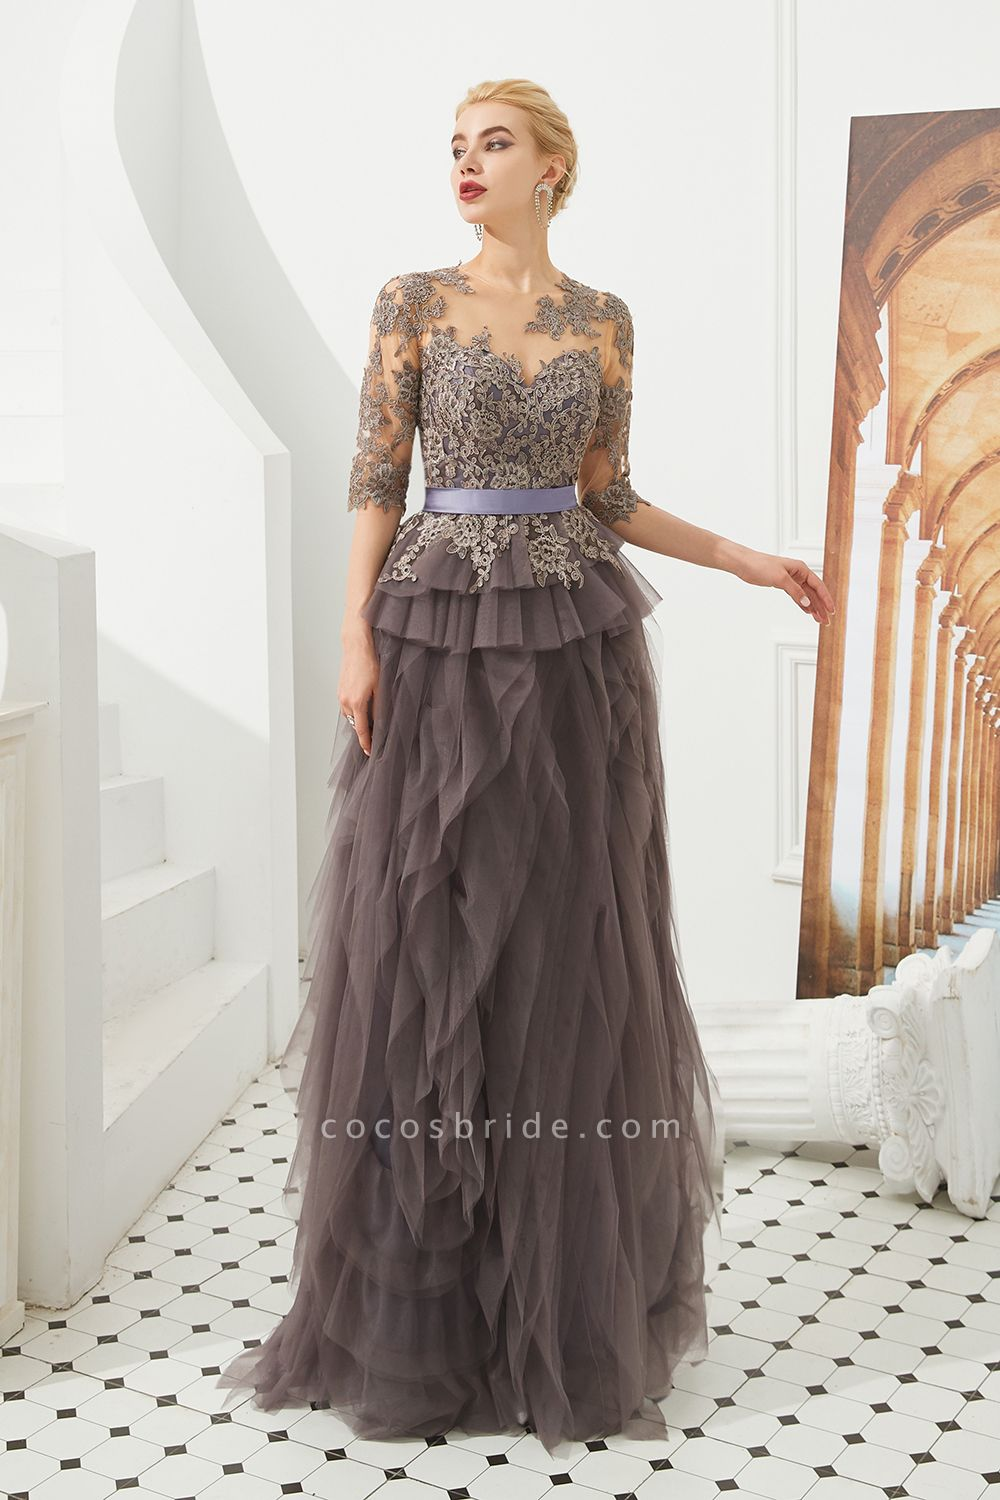 Fabulous Jewel Tulle Ball Gown Prom Dress